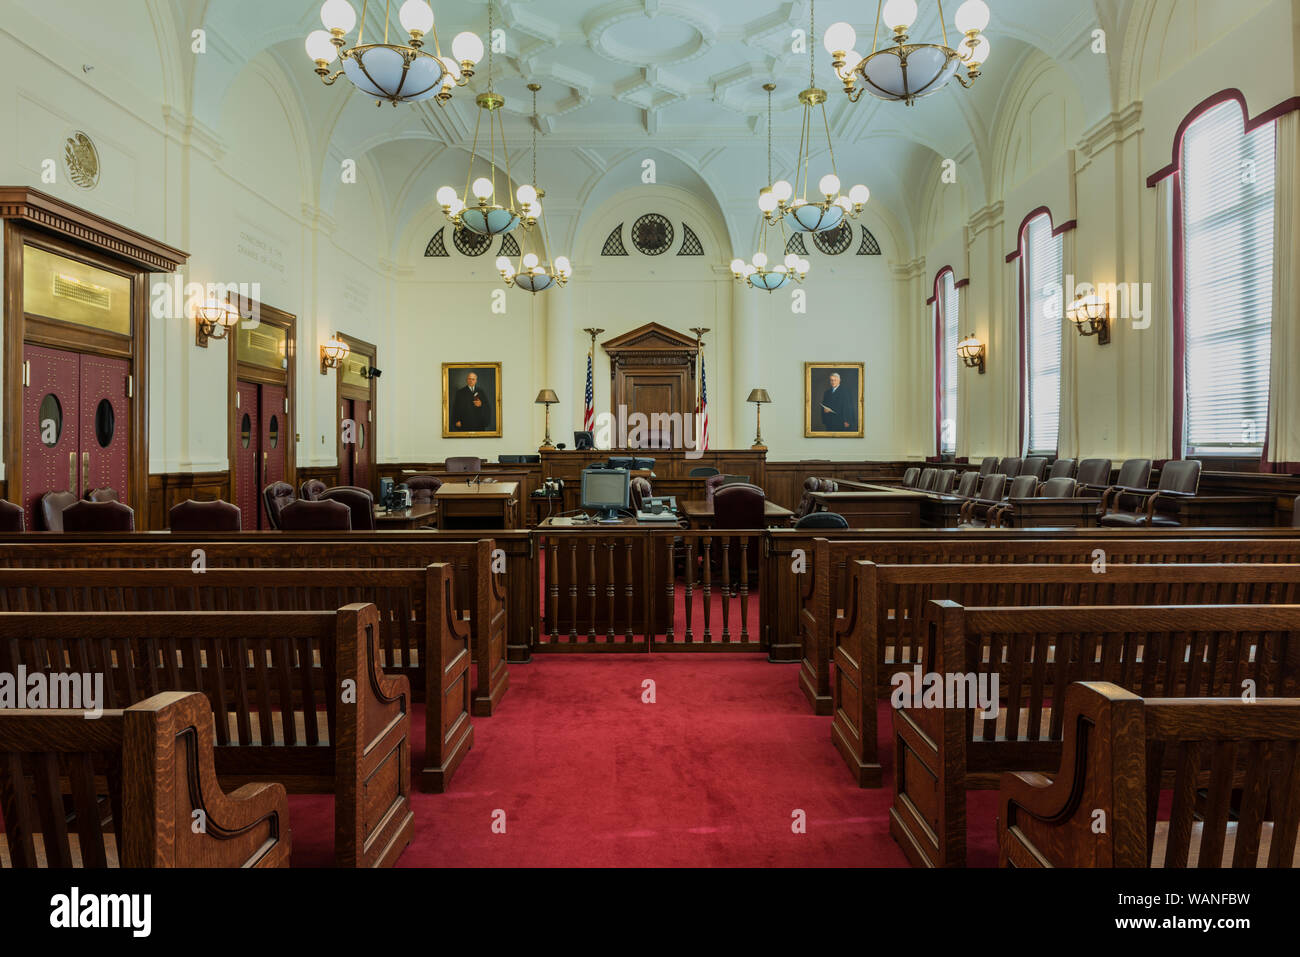 Courtroom at the Ed Edmondson Courthouse, also known as the U.S. Post Office and Courthouse, occupies an entire block between West Broadway, West Okmulgee Avenues and Fifth Street, Muskogee, Oklahoma Stock Photo